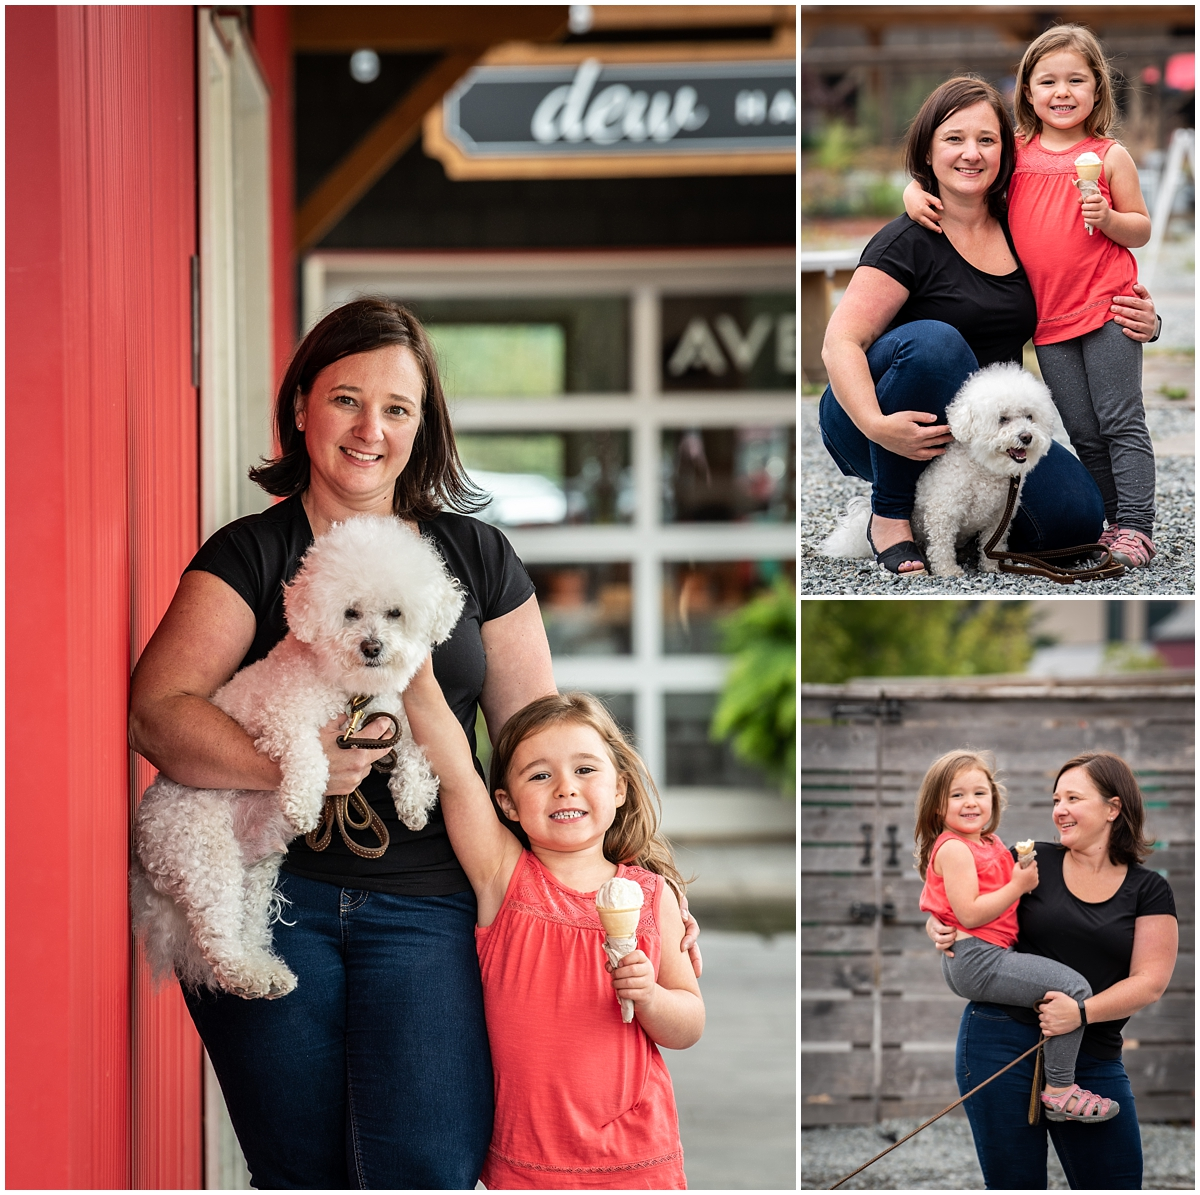 I can't get over this little fluffball that came for the fun! He was so well behaved, and a great poser!